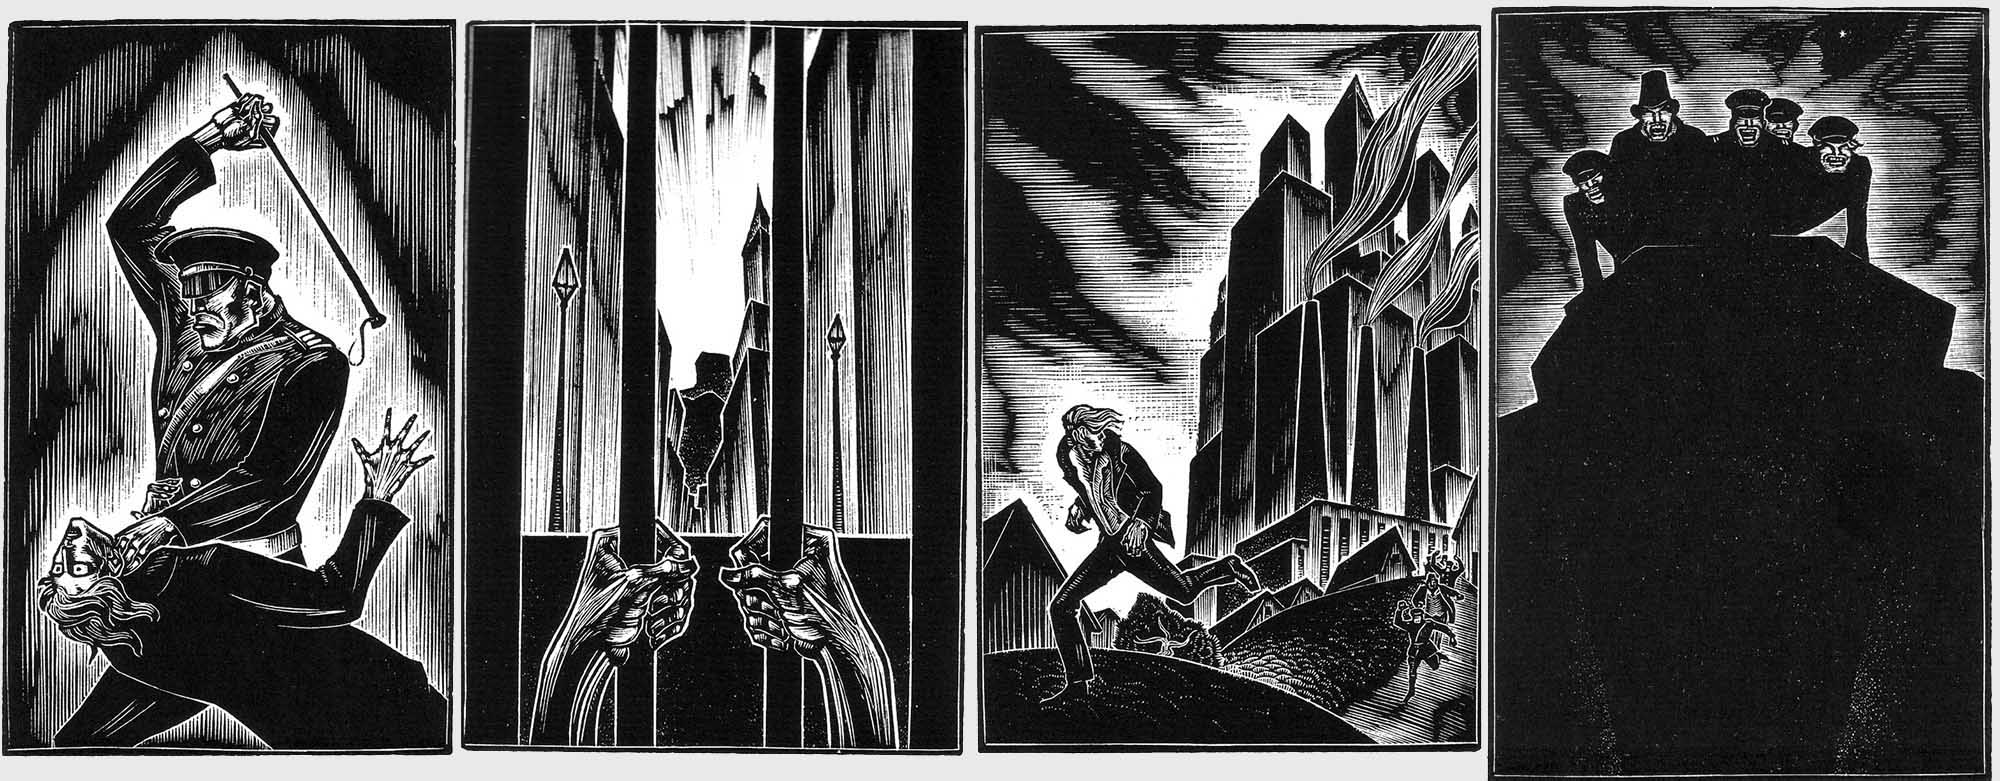 Lynd Ward: Gods Men (1929)